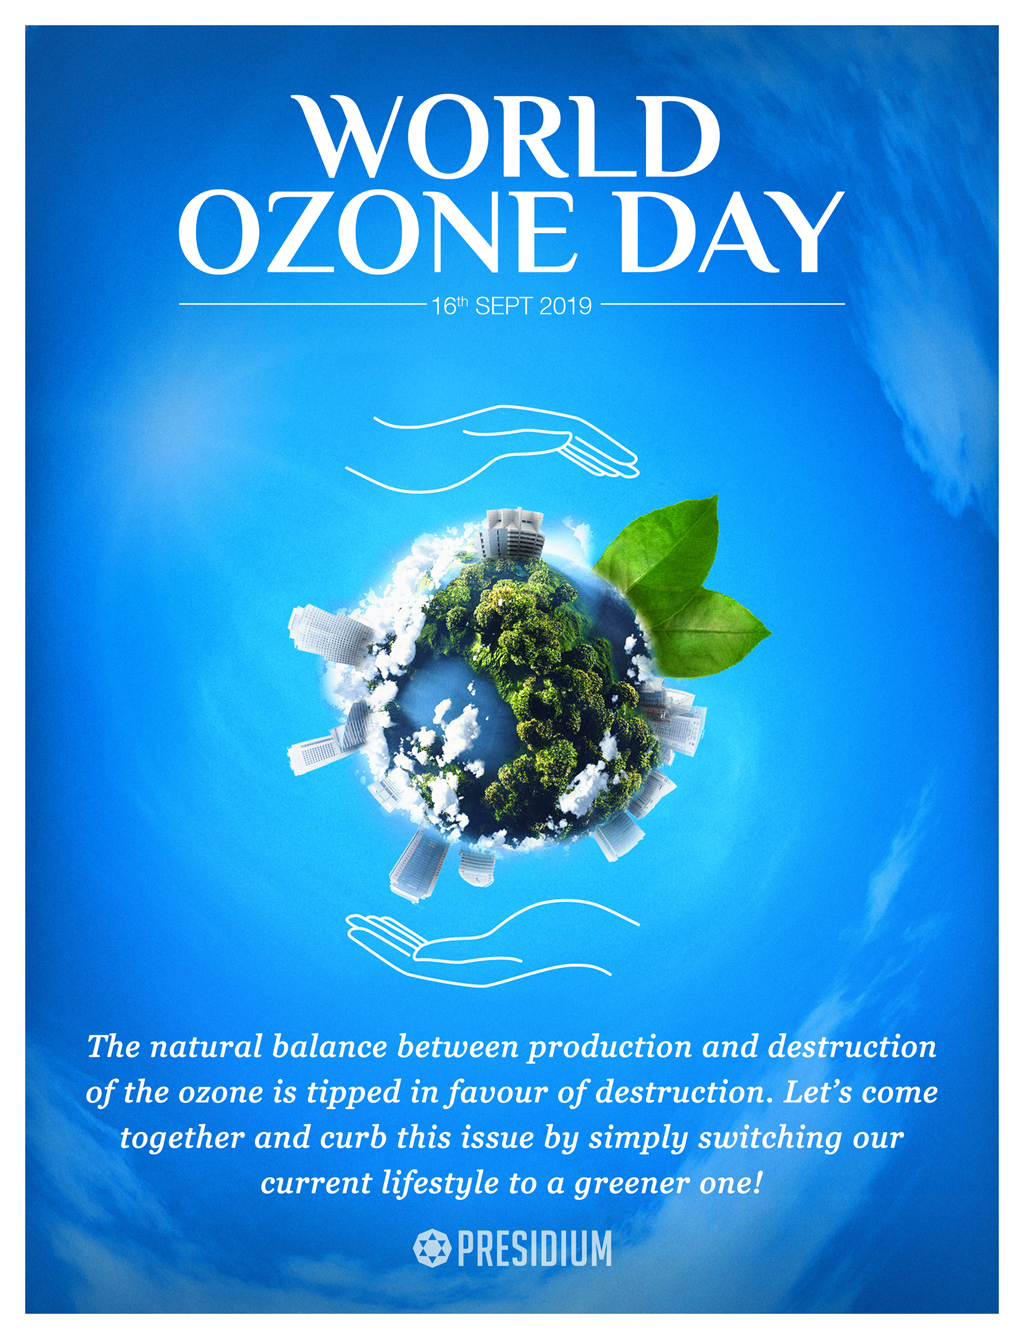 OZONE DAY'19: DON'T LET THE FUTURE GO UP IN SMOKE,SAVE THE OZONE